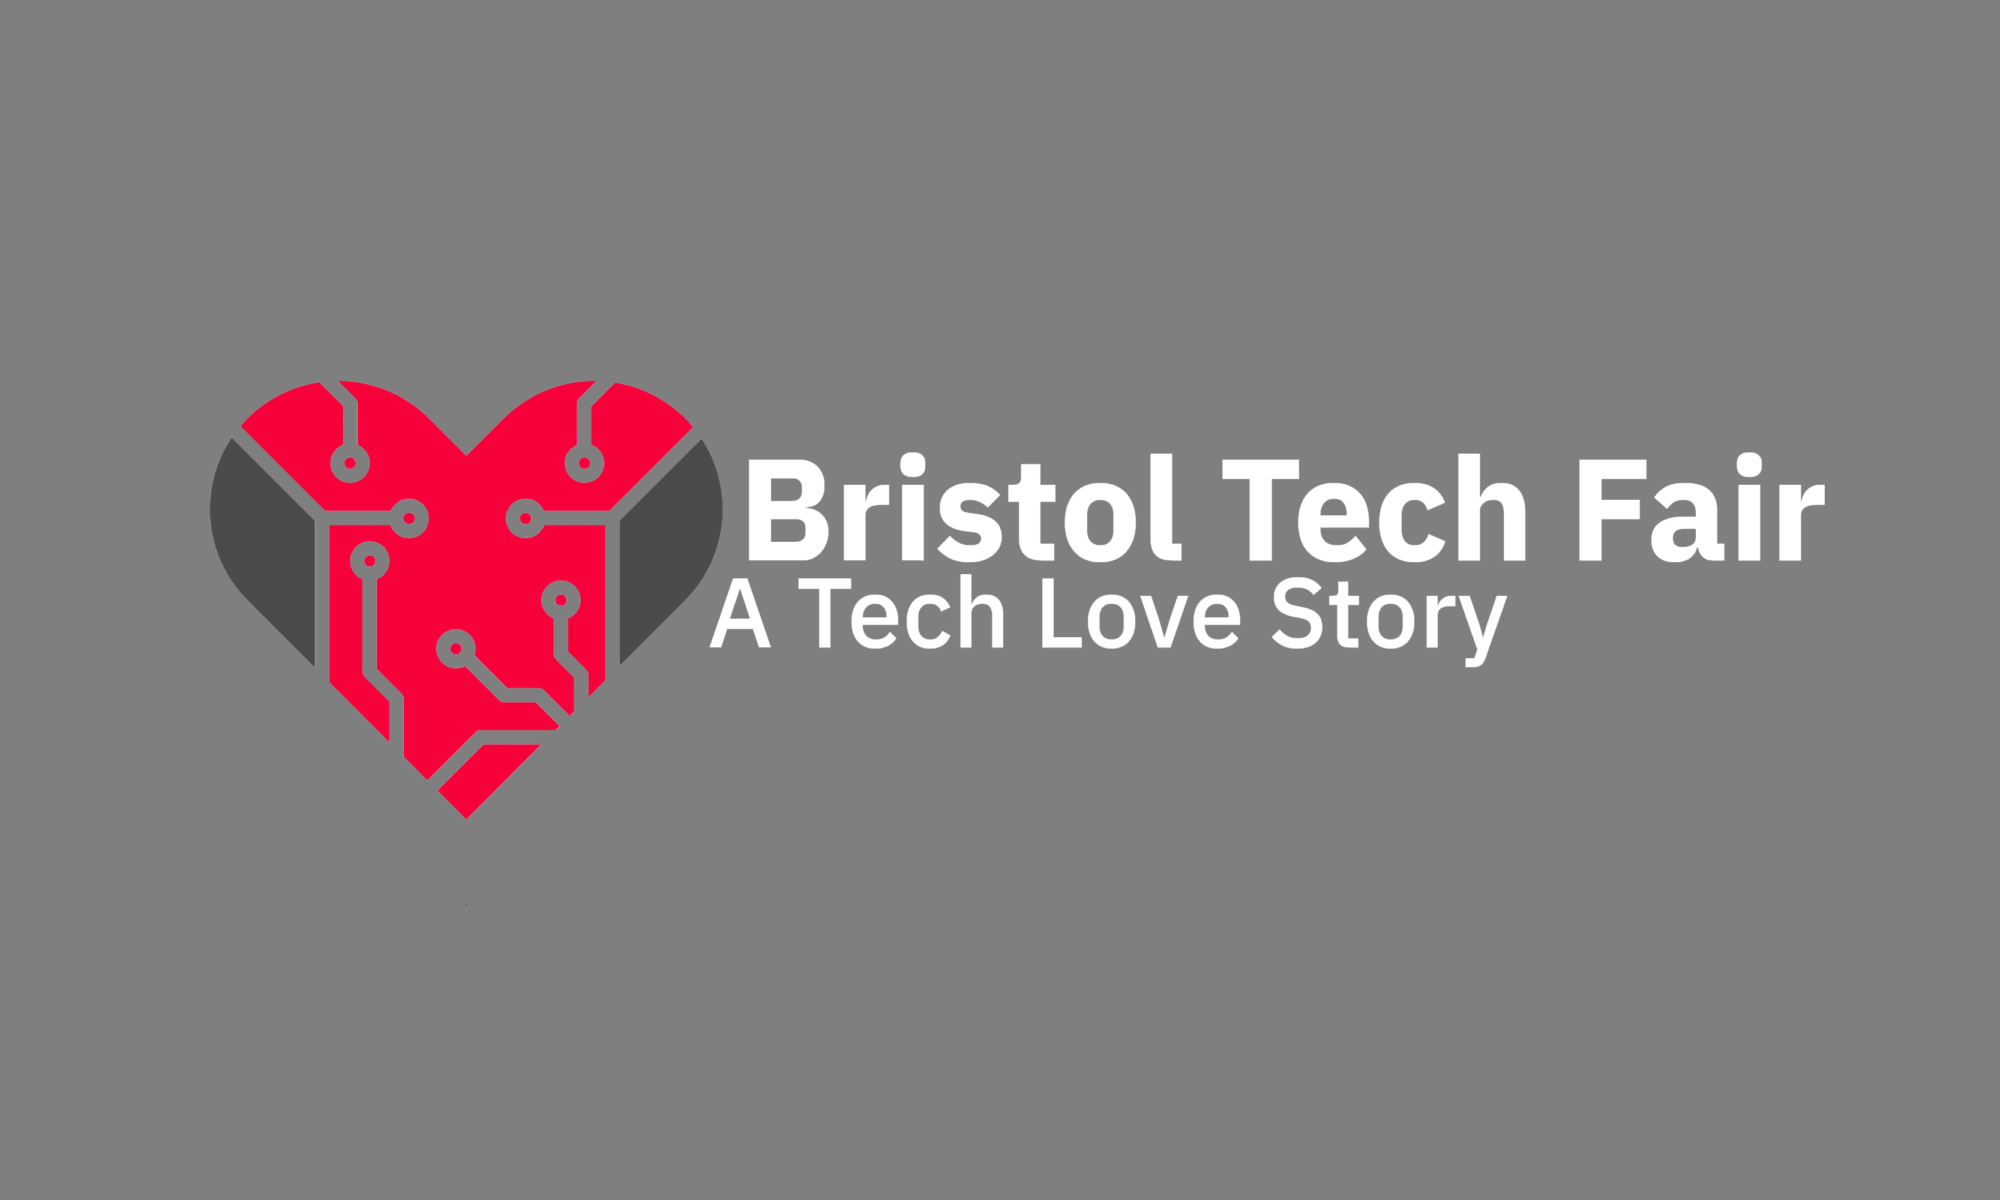 Bristol Tech Fair